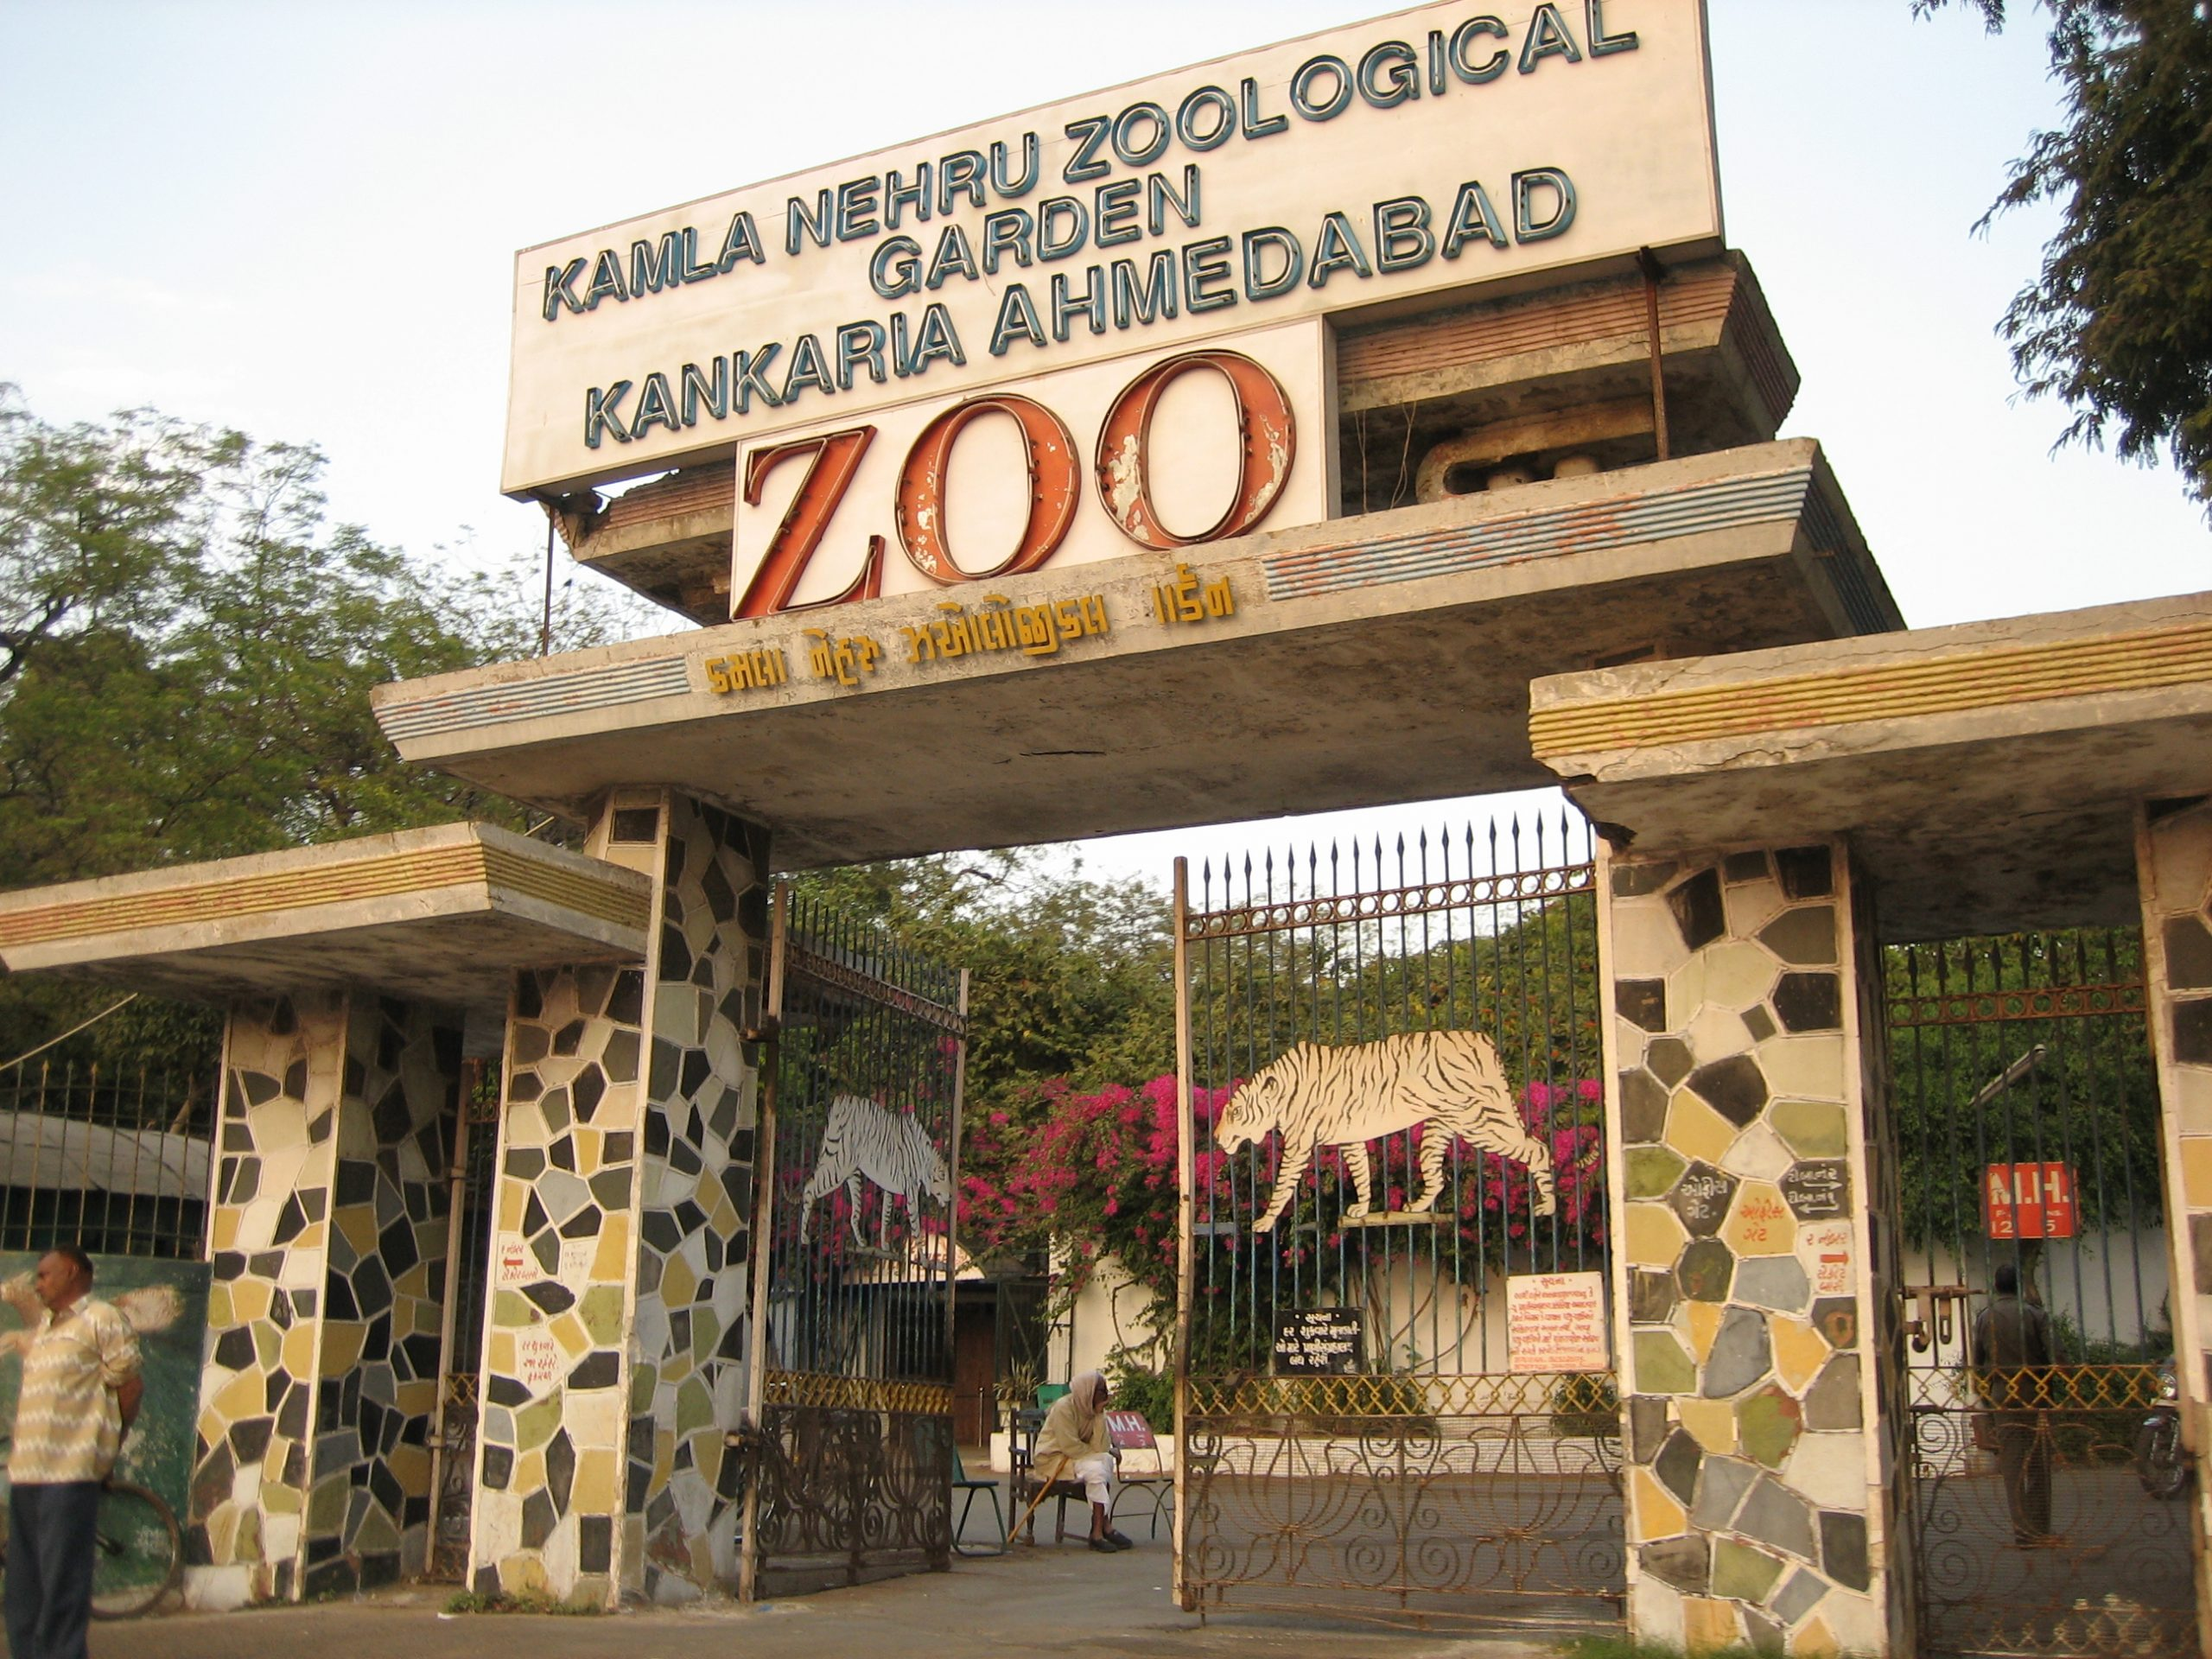 Kamlanehru Zoo Kankaria - Things to Do in Ahmedabad